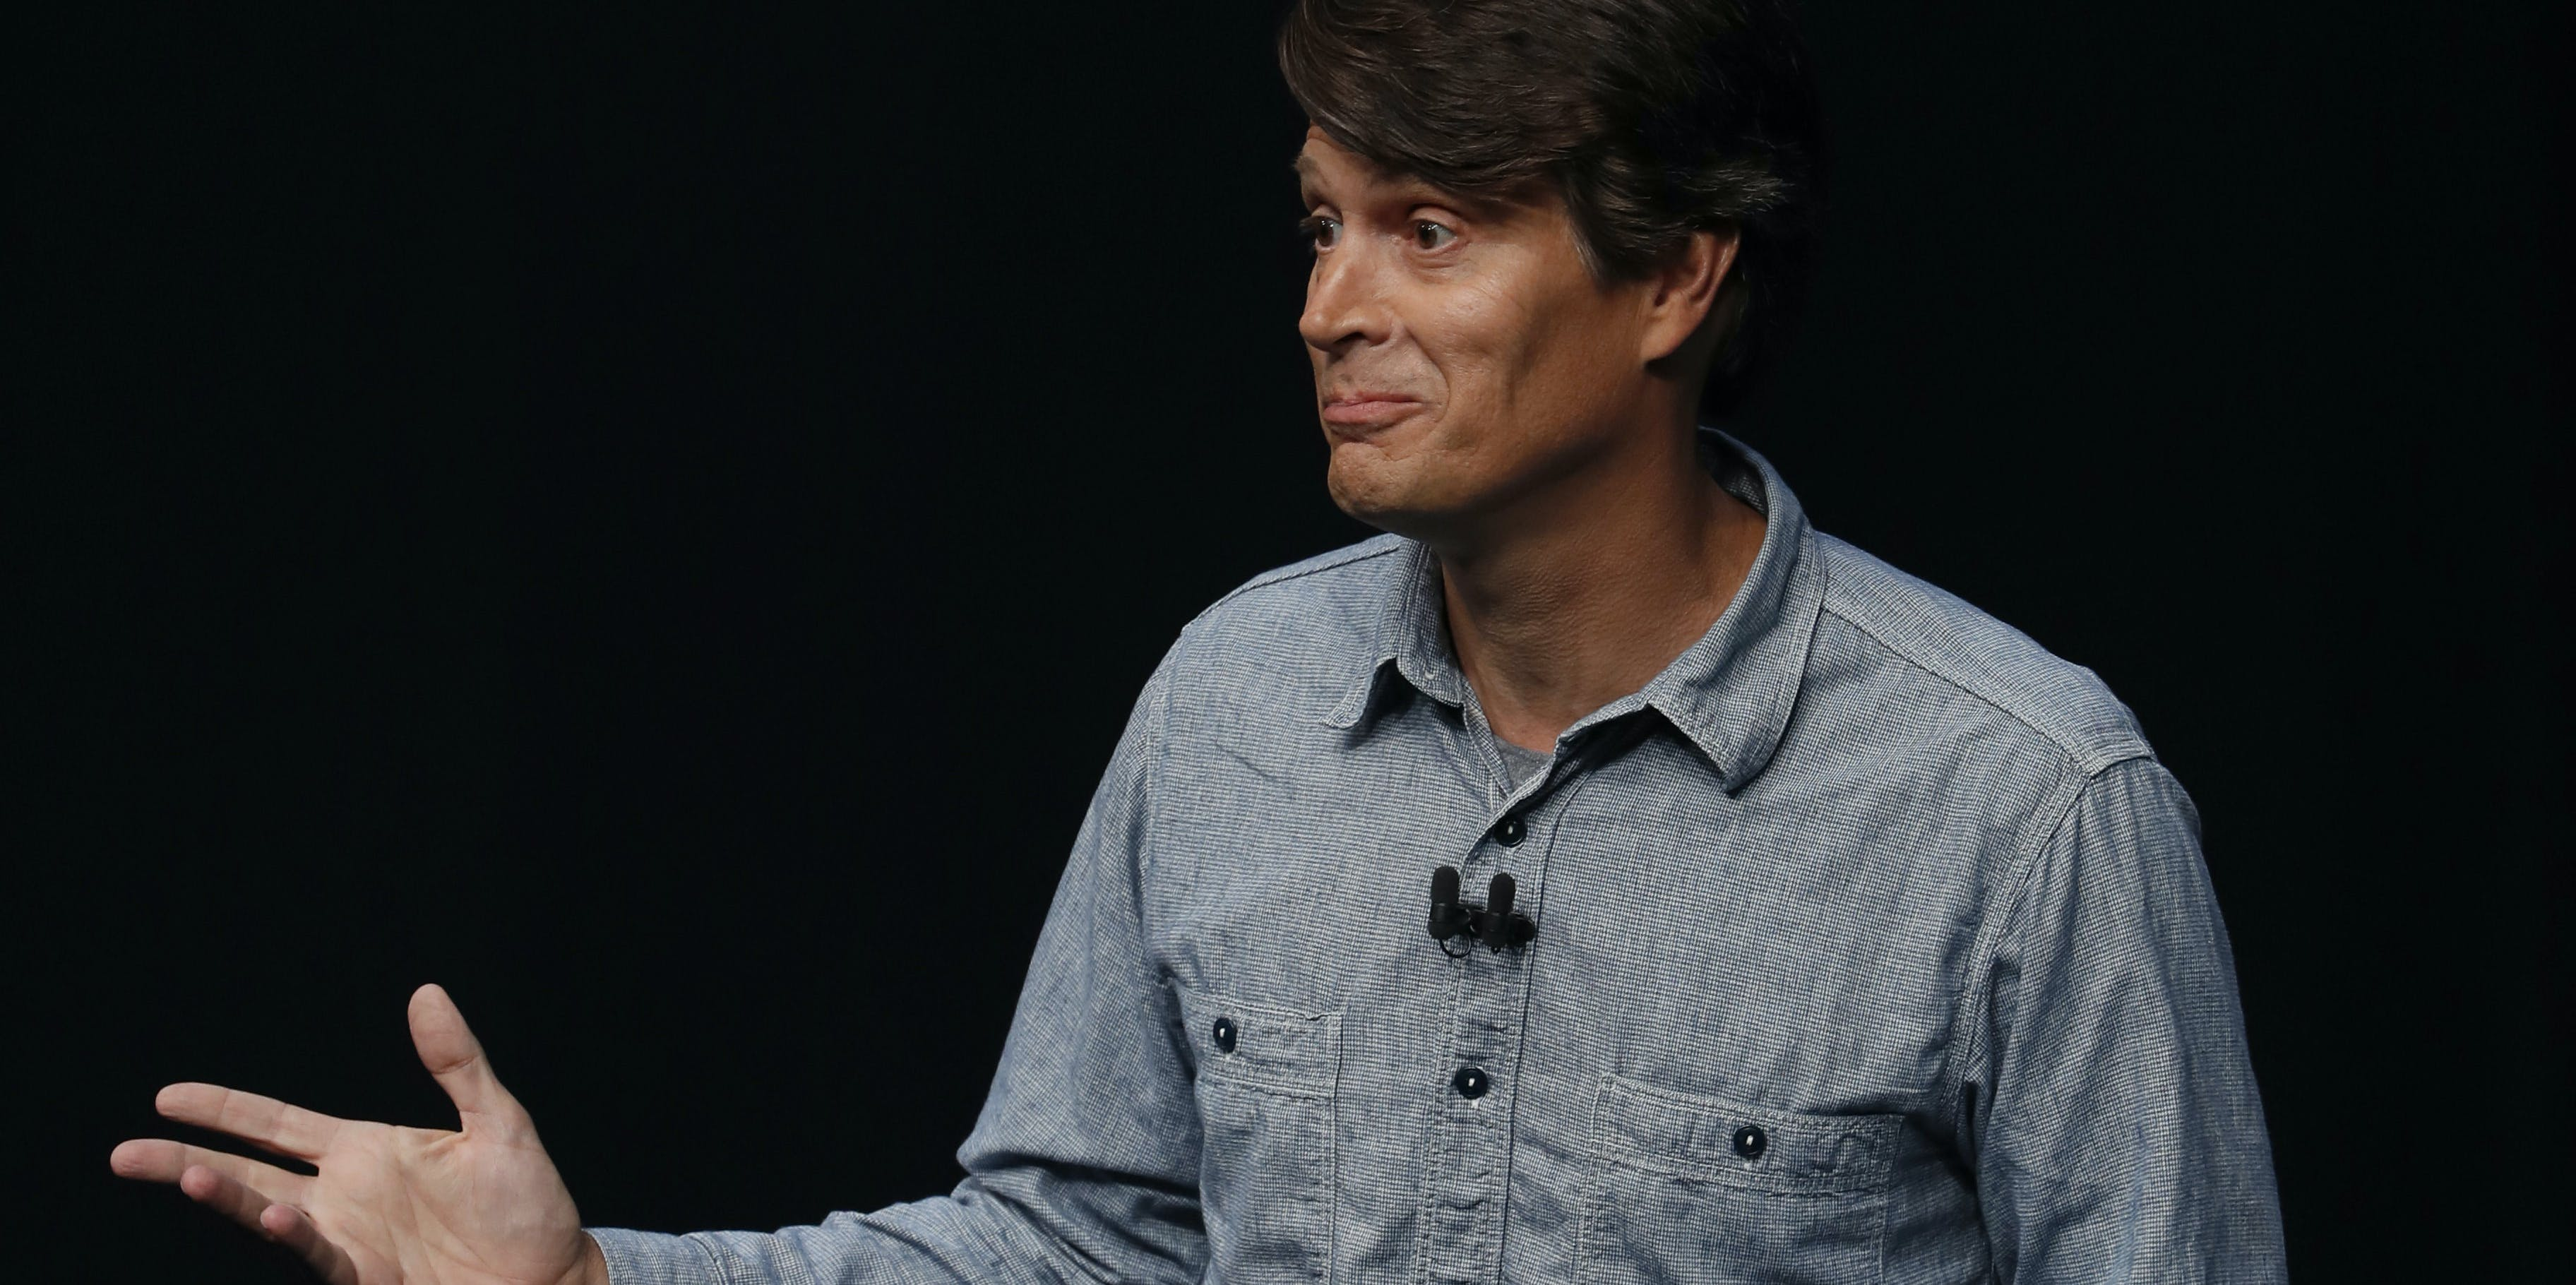 SAN FRANCISCO, CA - SEPTEMBER 07: John Hanke, CEO of Niantic, Inc, speaks on stage during an Apple launch event on September 7, 2016 in San Francisco, California. Apple Inc. unveiled the latest iterations of its smart phone, the iPhone 7 and 7 Plus, the Apple Watch Series 2, as well as AirPods, the tech giant's first wireless headphones. (Photo by Stephen Lam/Getty Images)